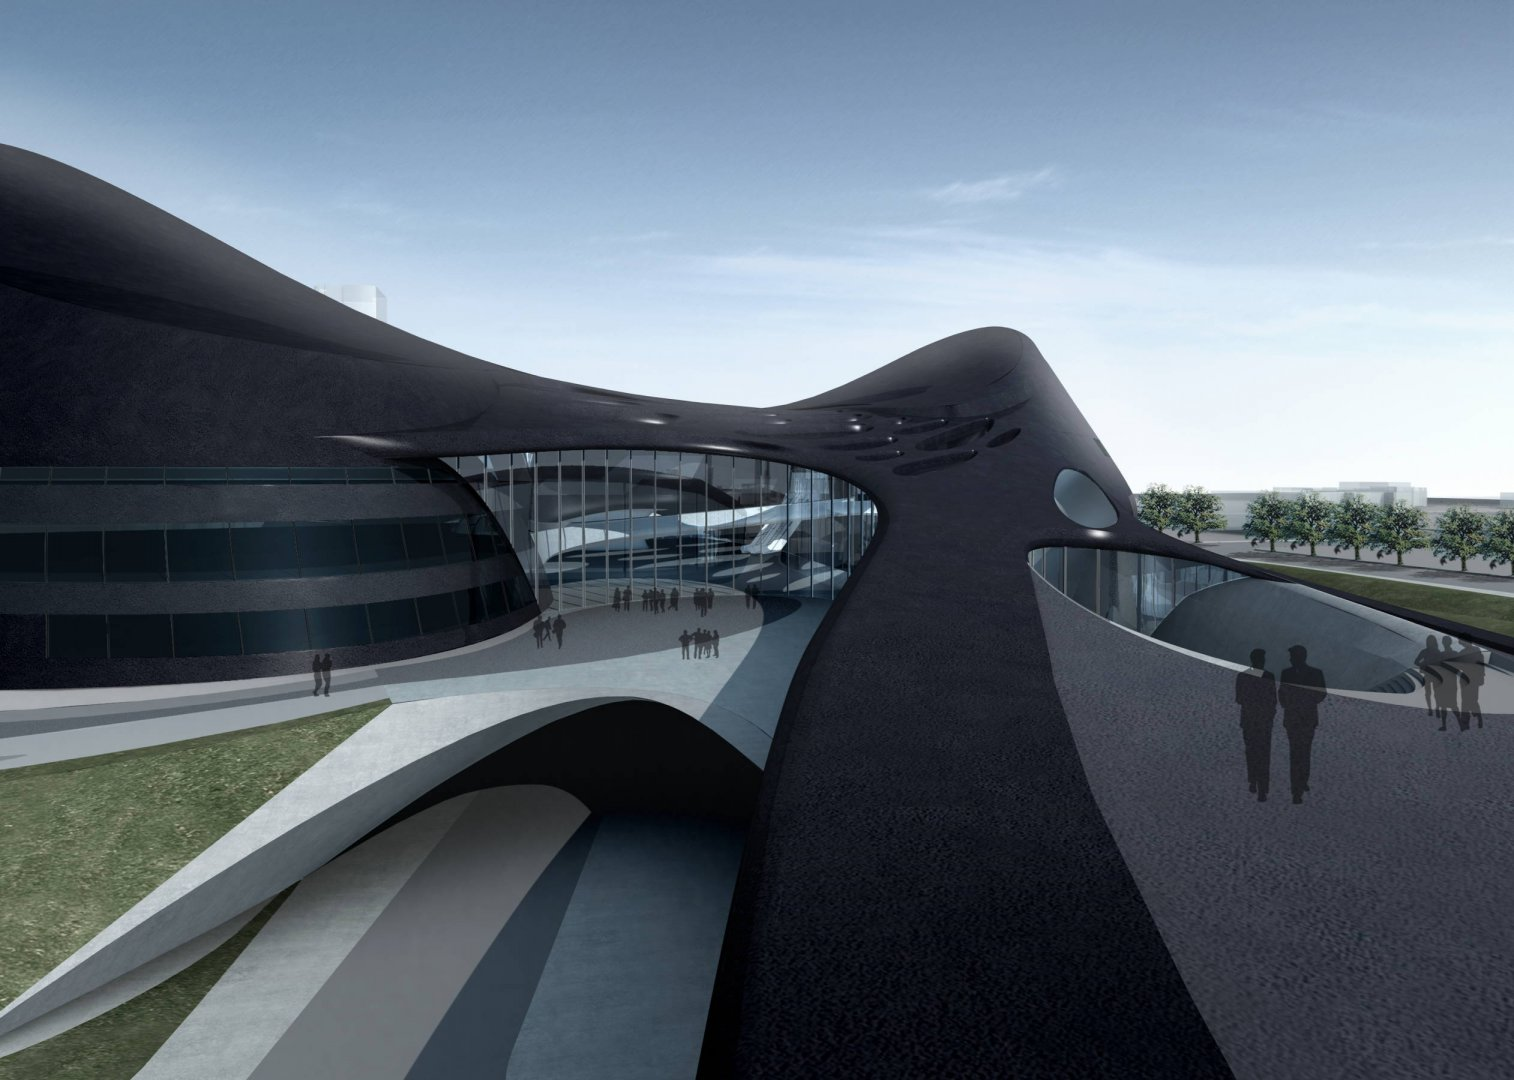 world of architecture architecture taichung metropolitan opera house by zaha hadid architects. Black Bedroom Furniture Sets. Home Design Ideas